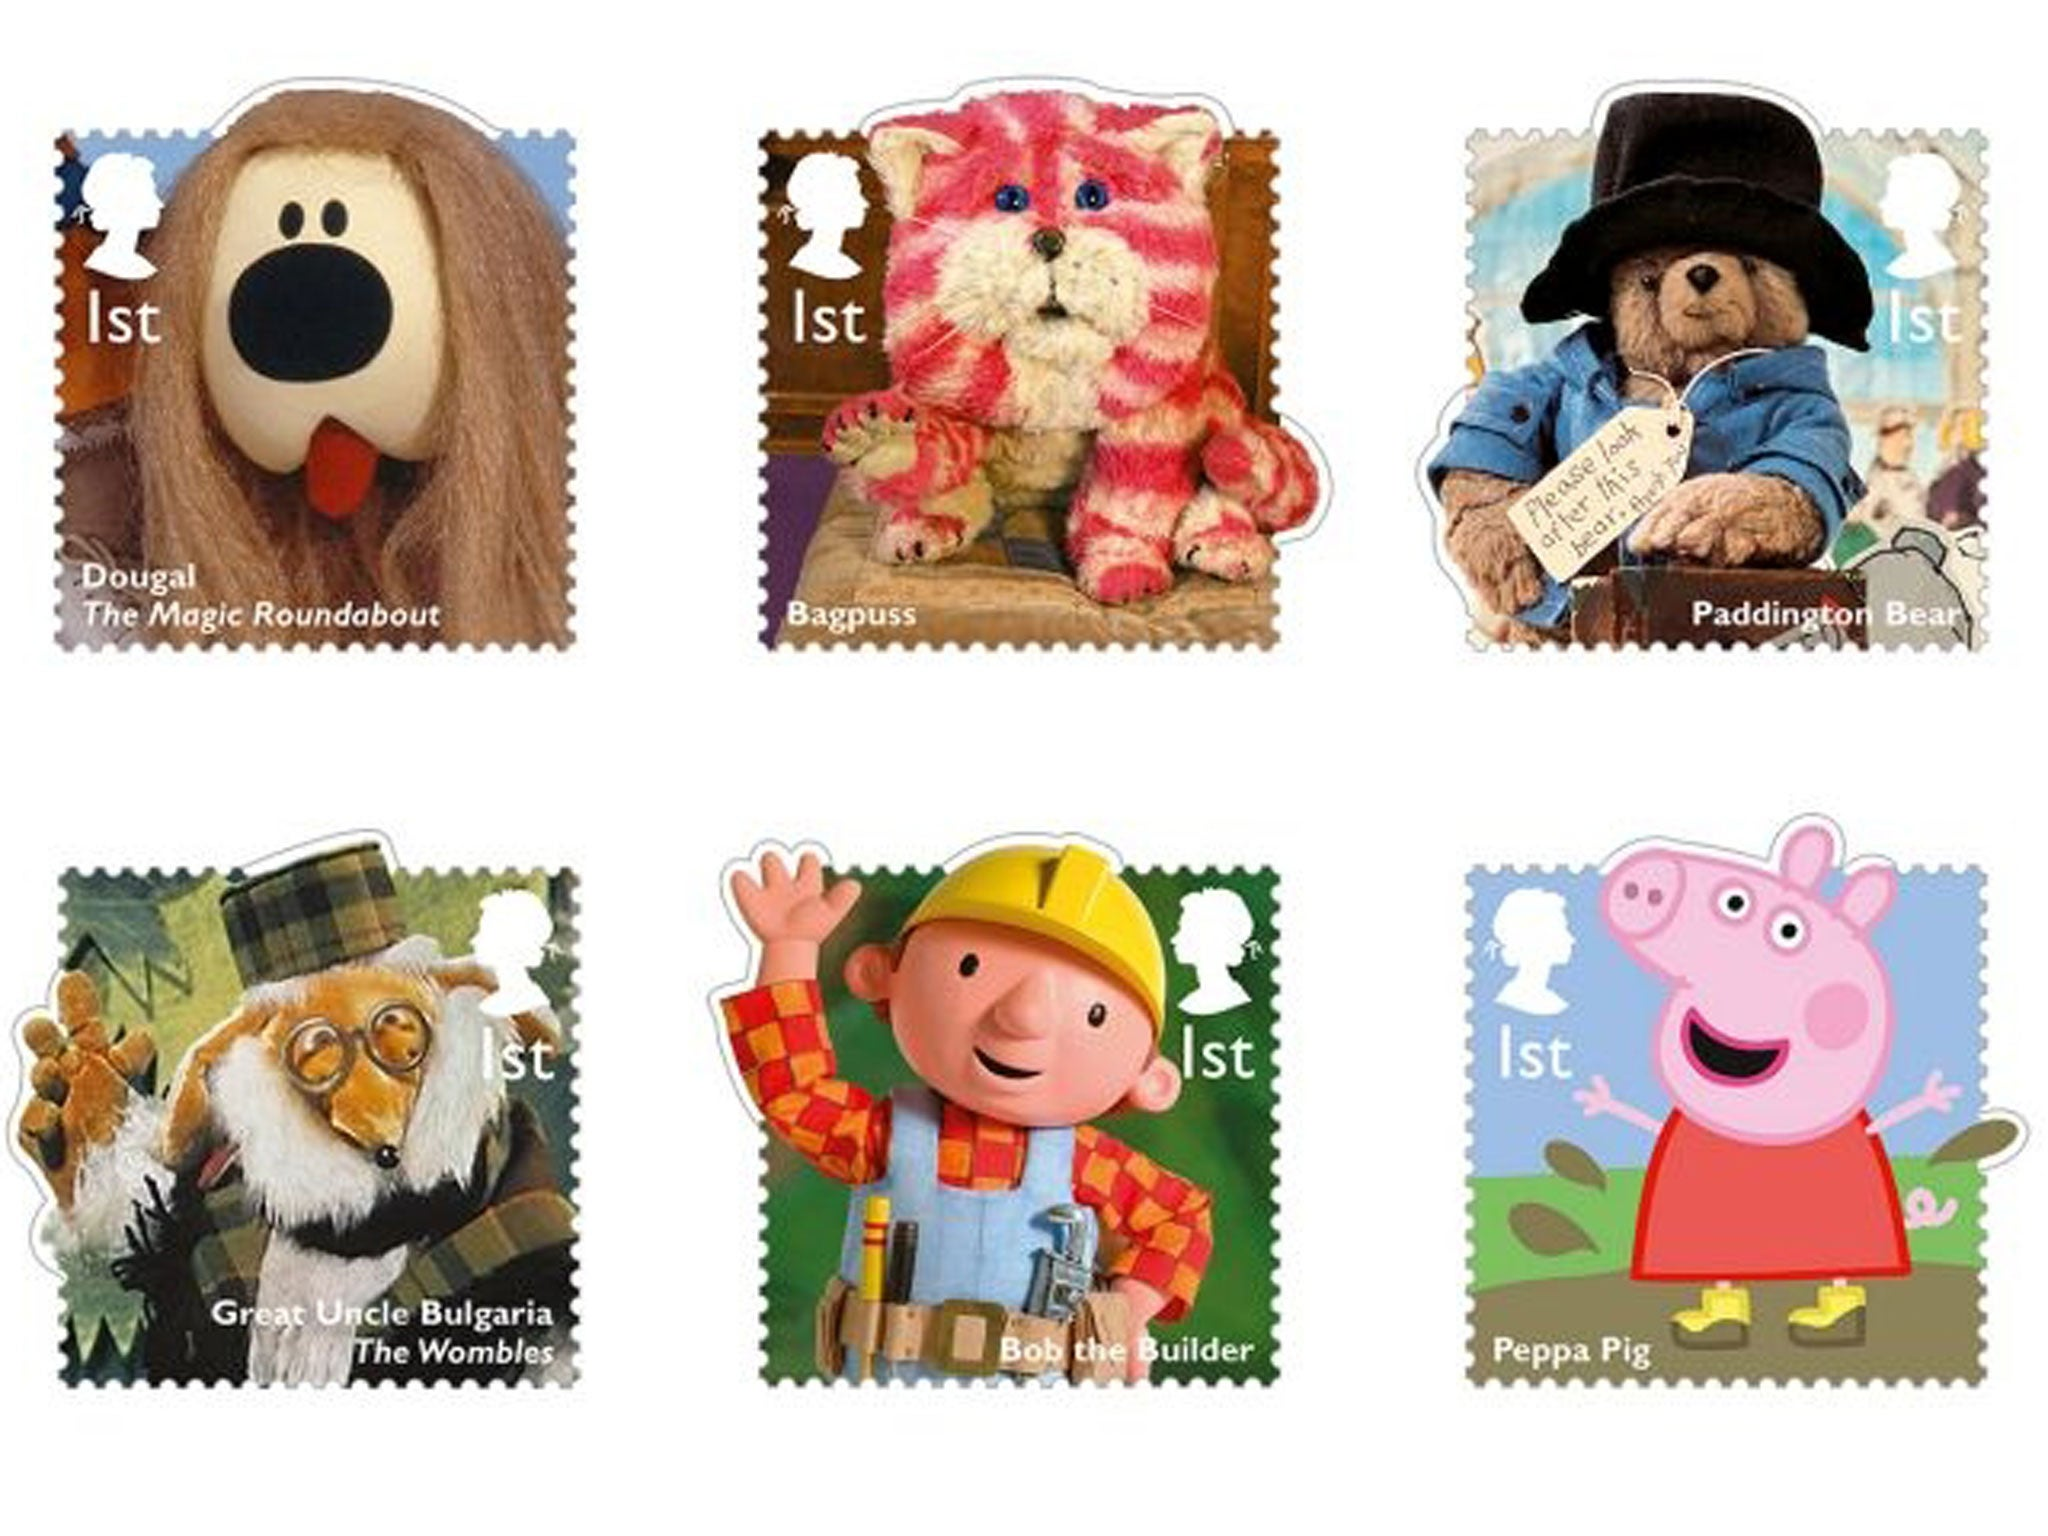 Children's TV characters to appear on stamps | The Independentindependent_brand_ident_LOGOUntitled